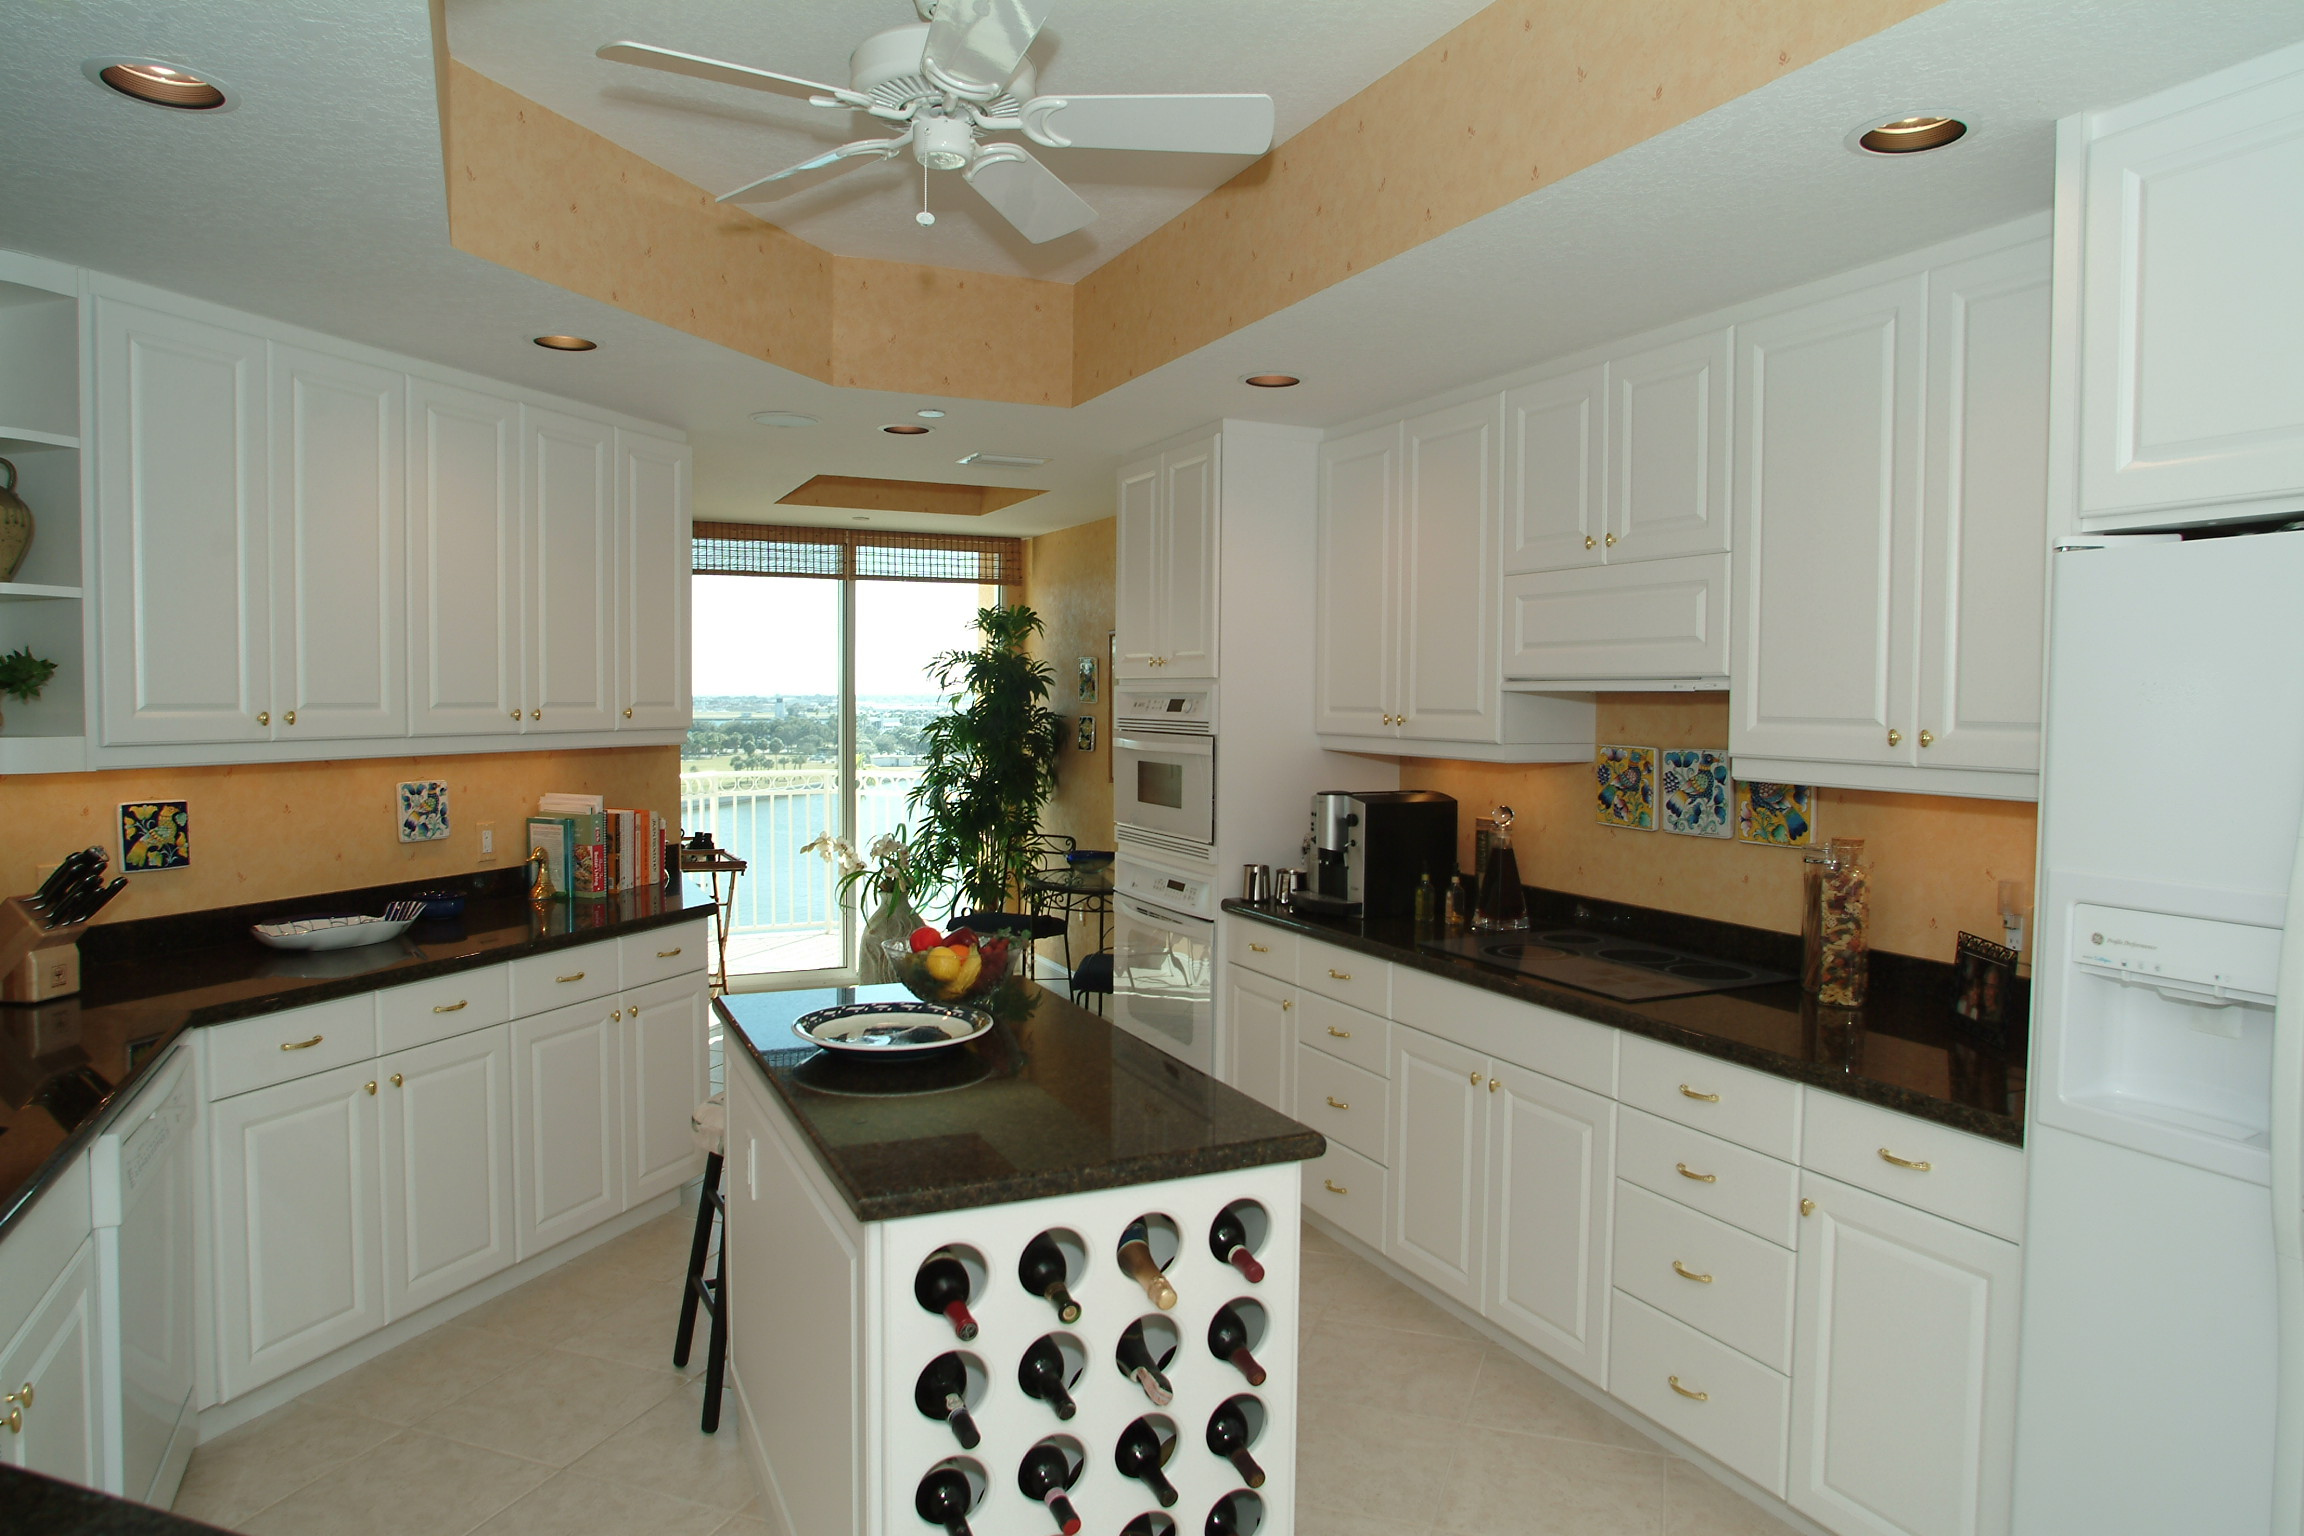 wine rack island kitchen bobs furniture new listing in downtown st petersburg selling real